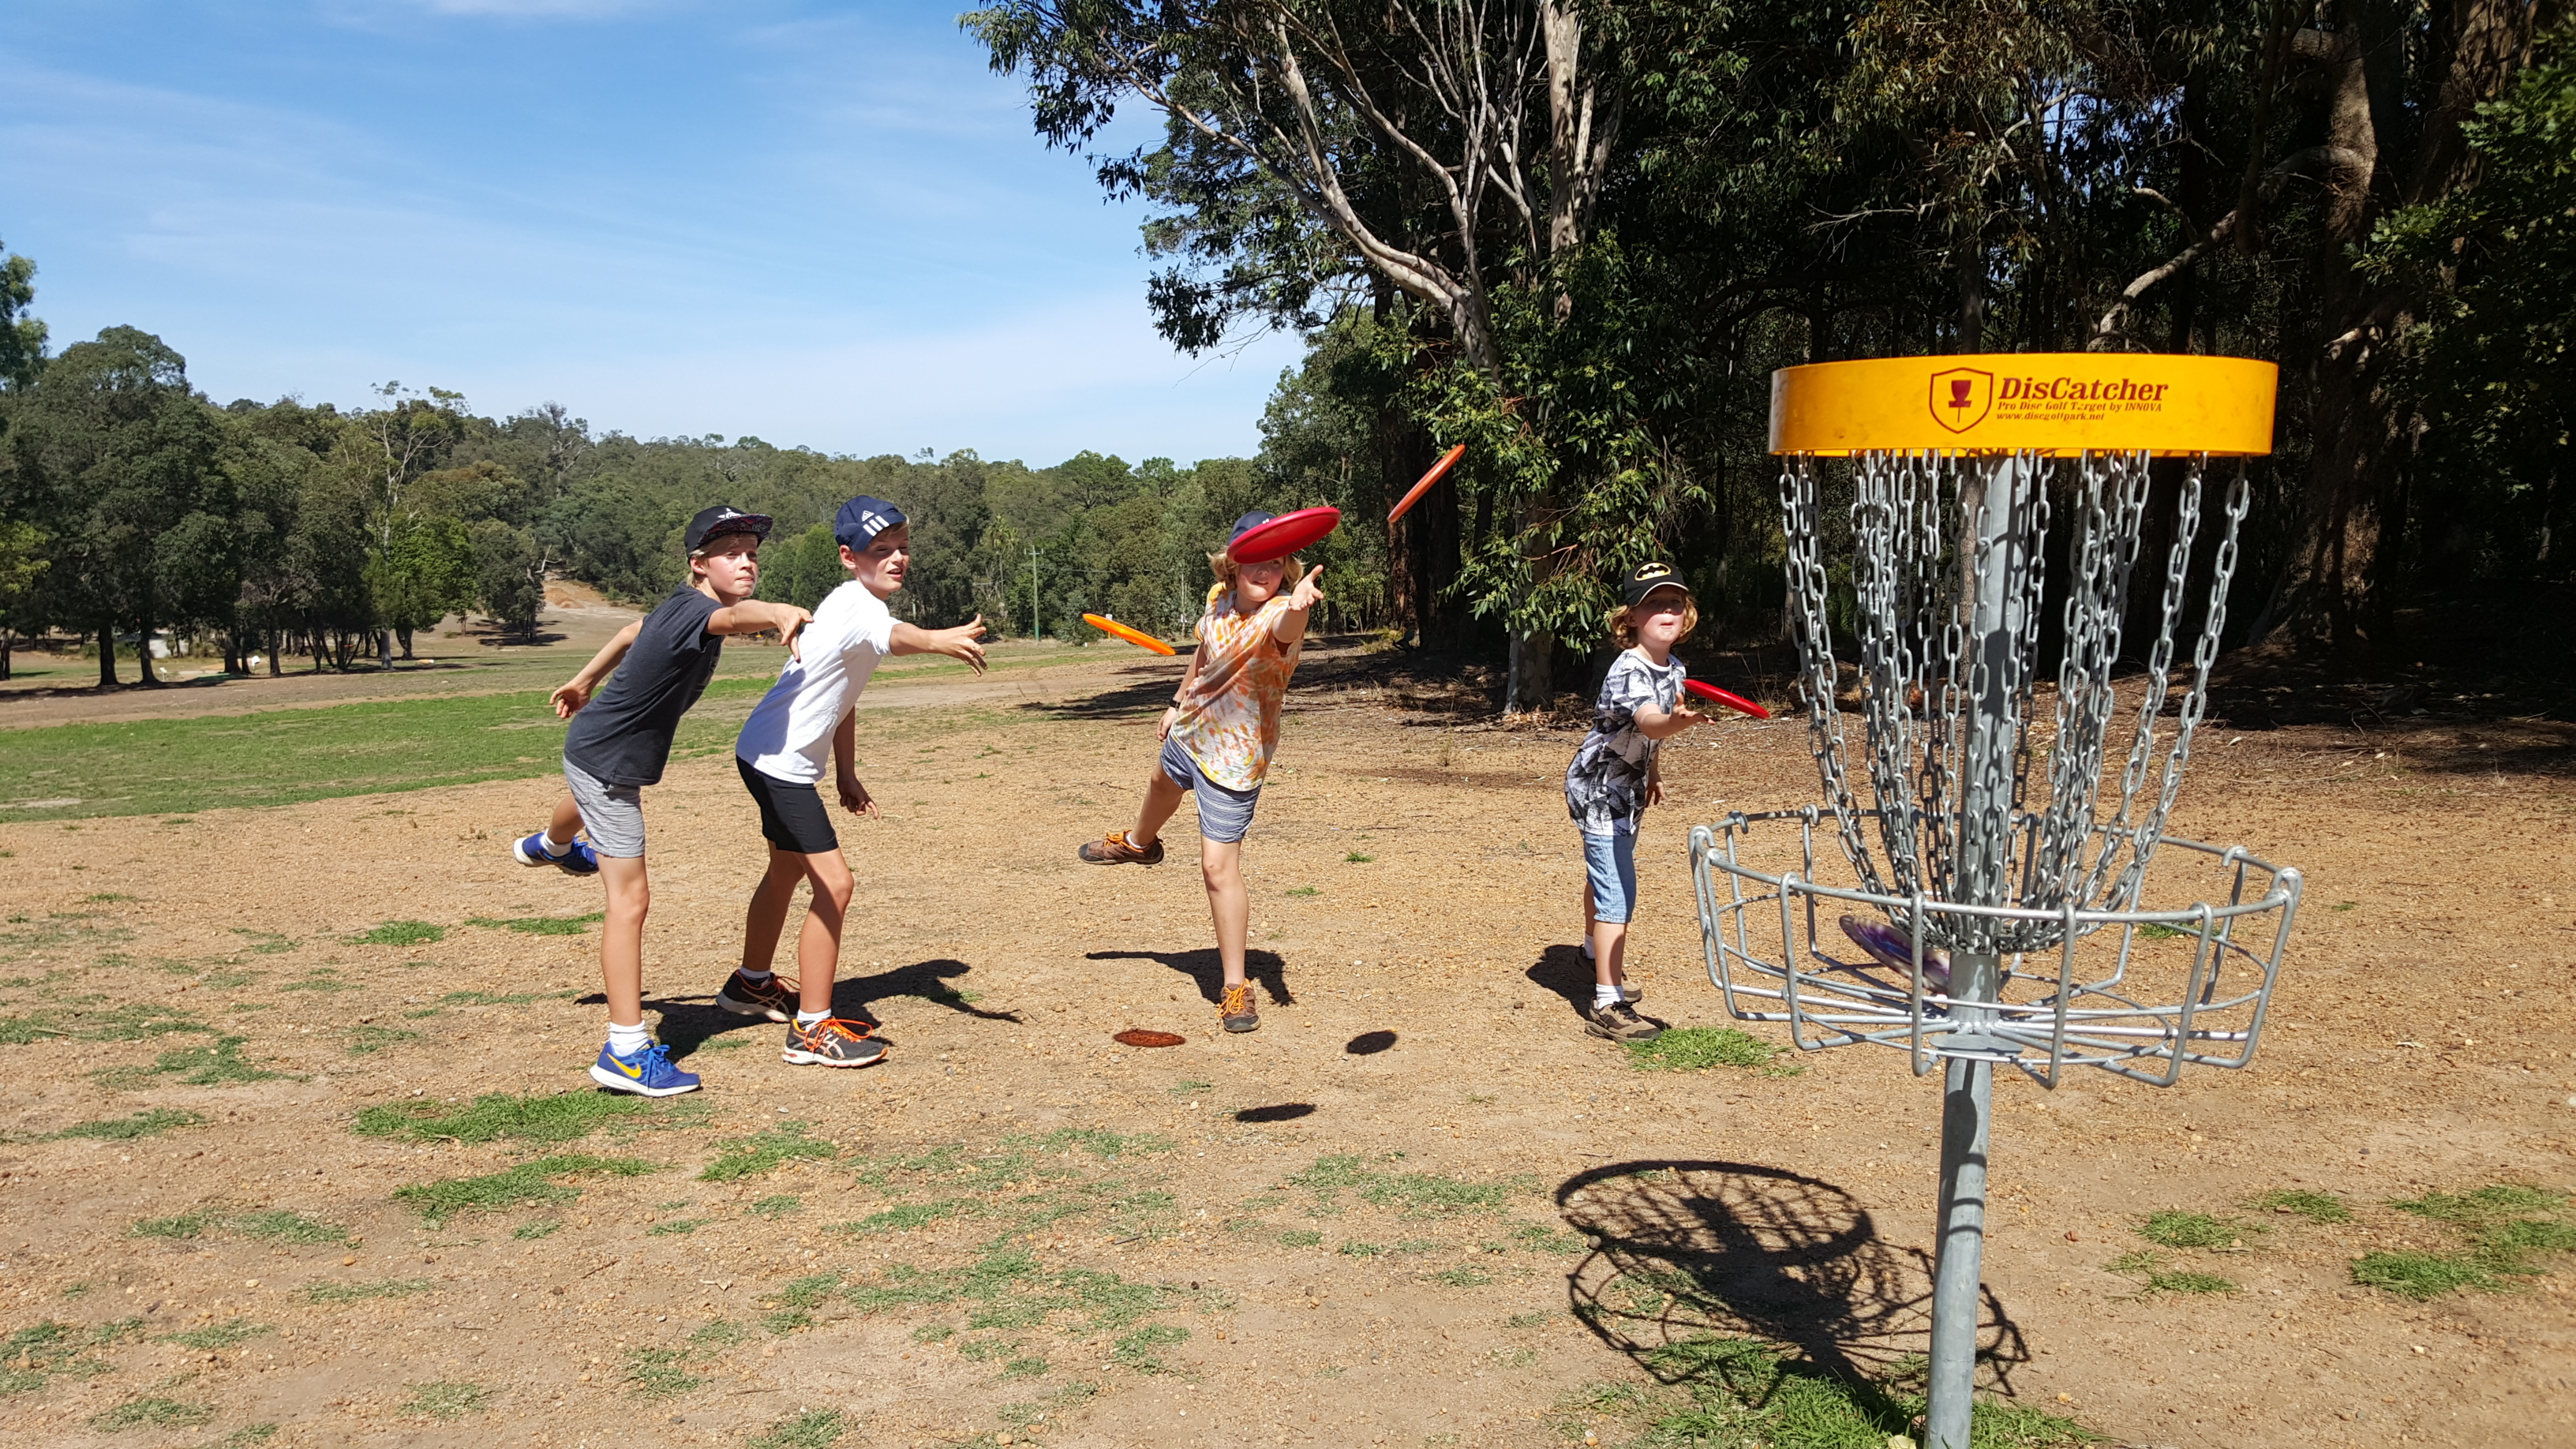 an image of children playing disc golf in a disc golf park